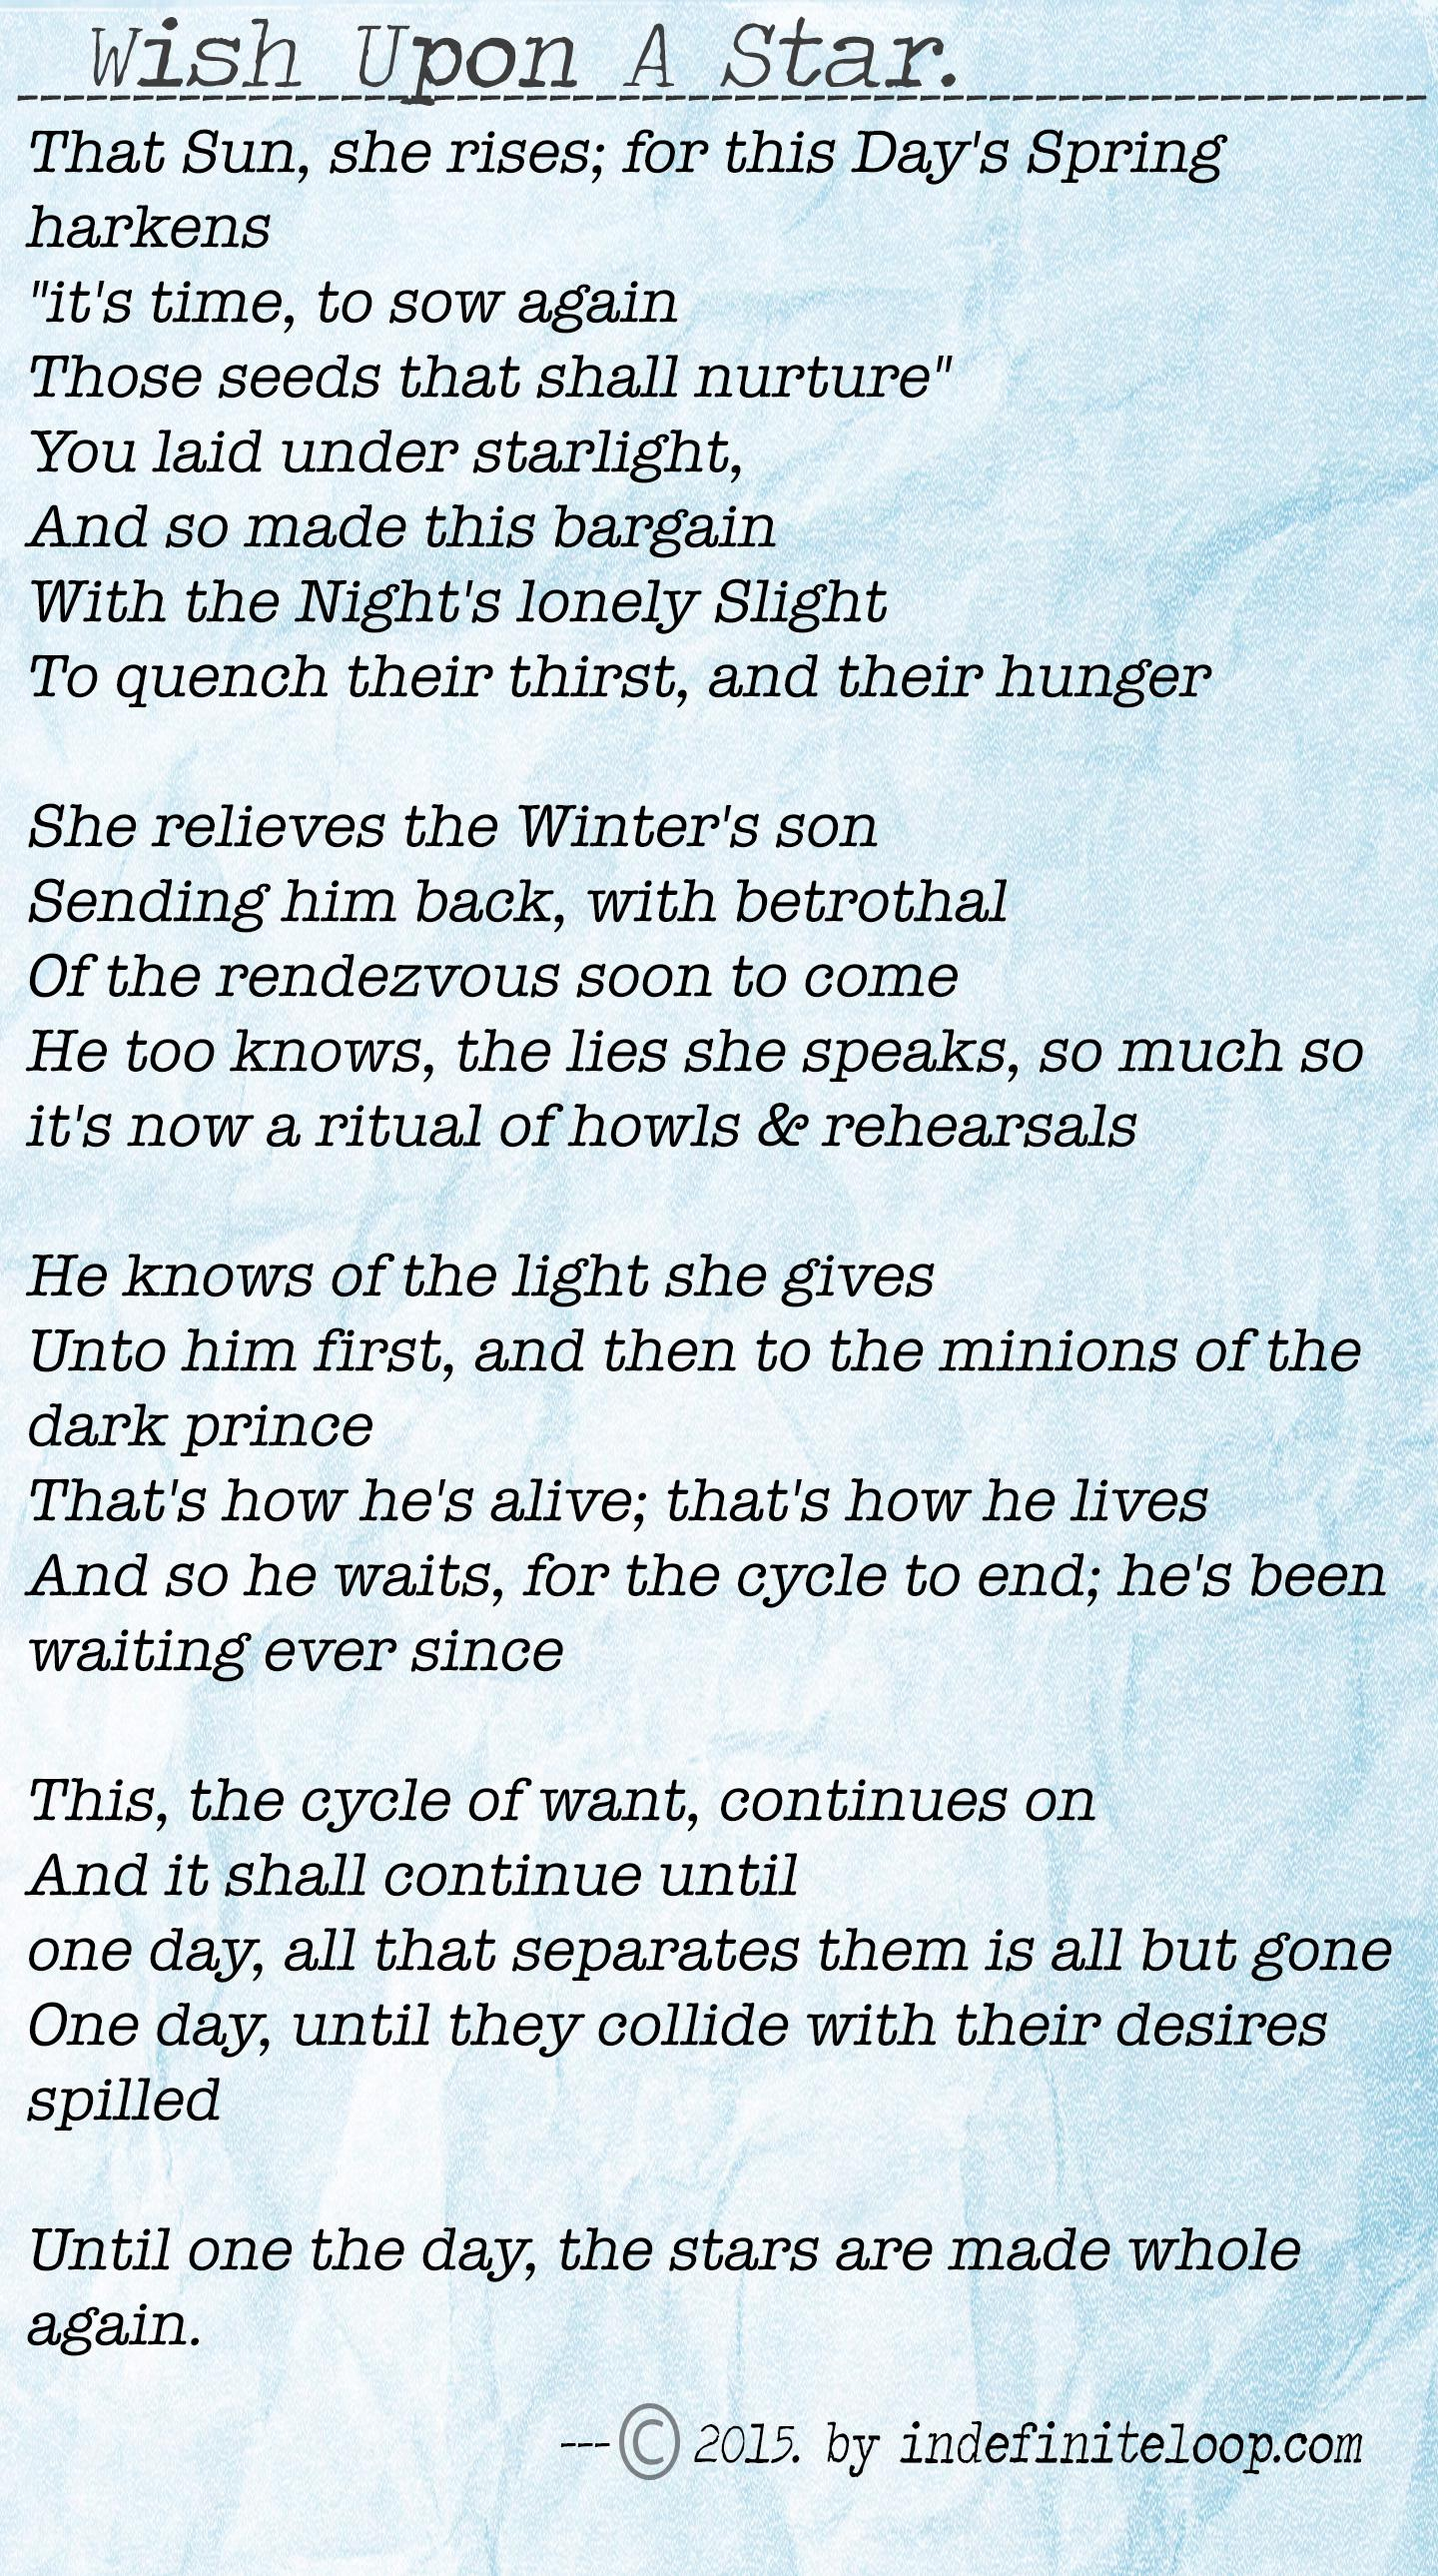 Wish Upon A Star - Poem - Copyright indefiniteloop.com